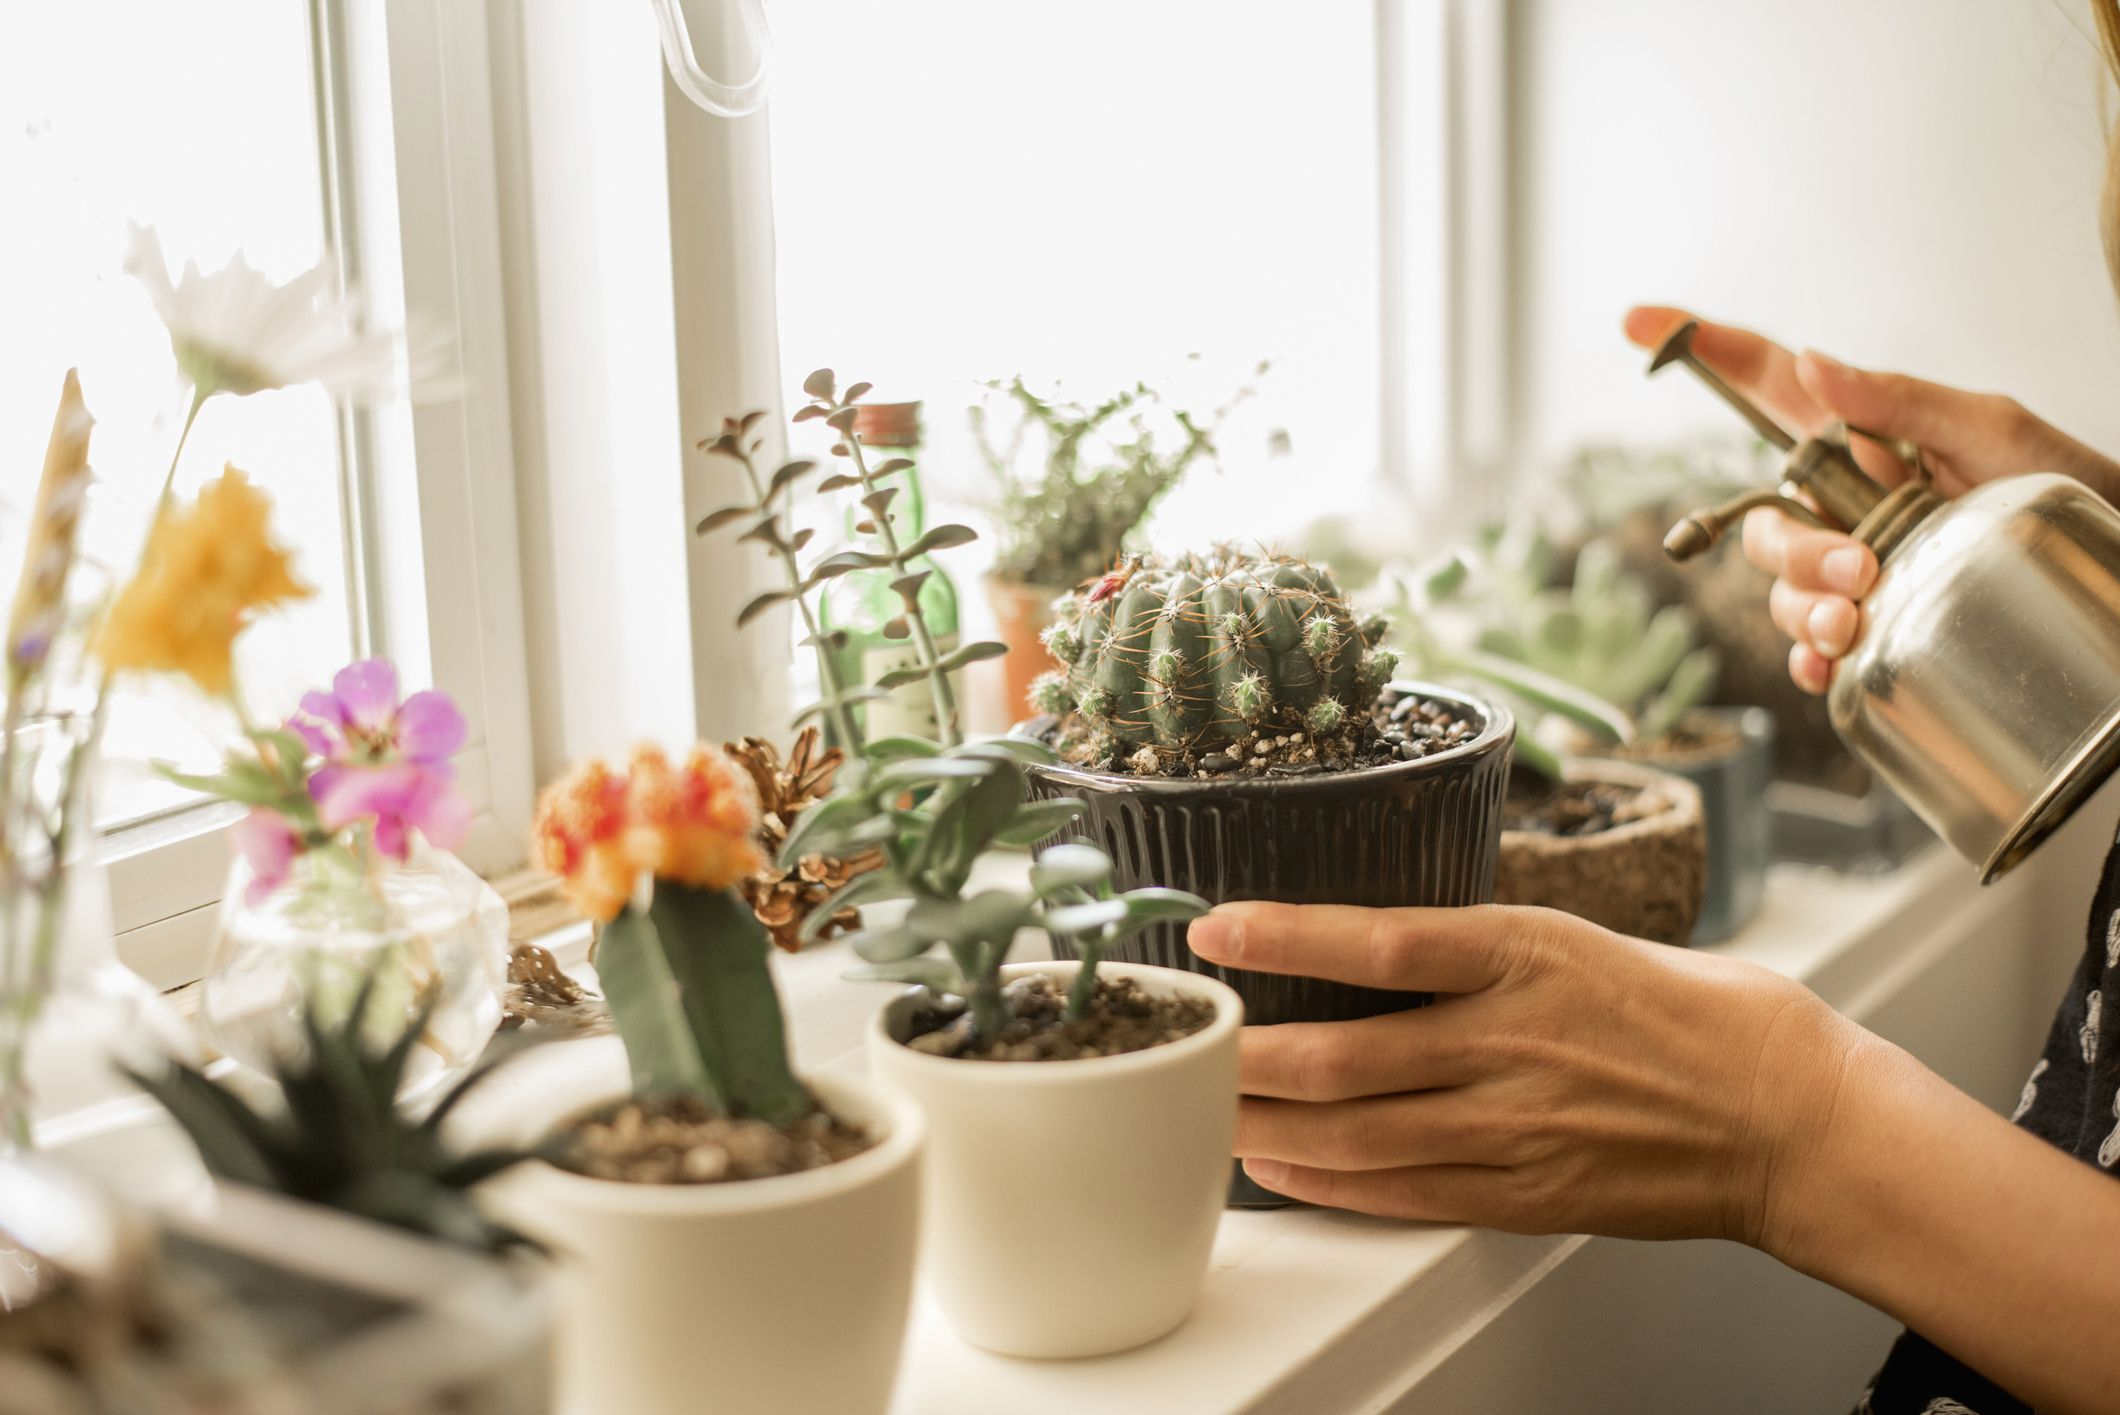 Our Best Cactus Garden Tips for Creating a Stunning, at-Home Oasis